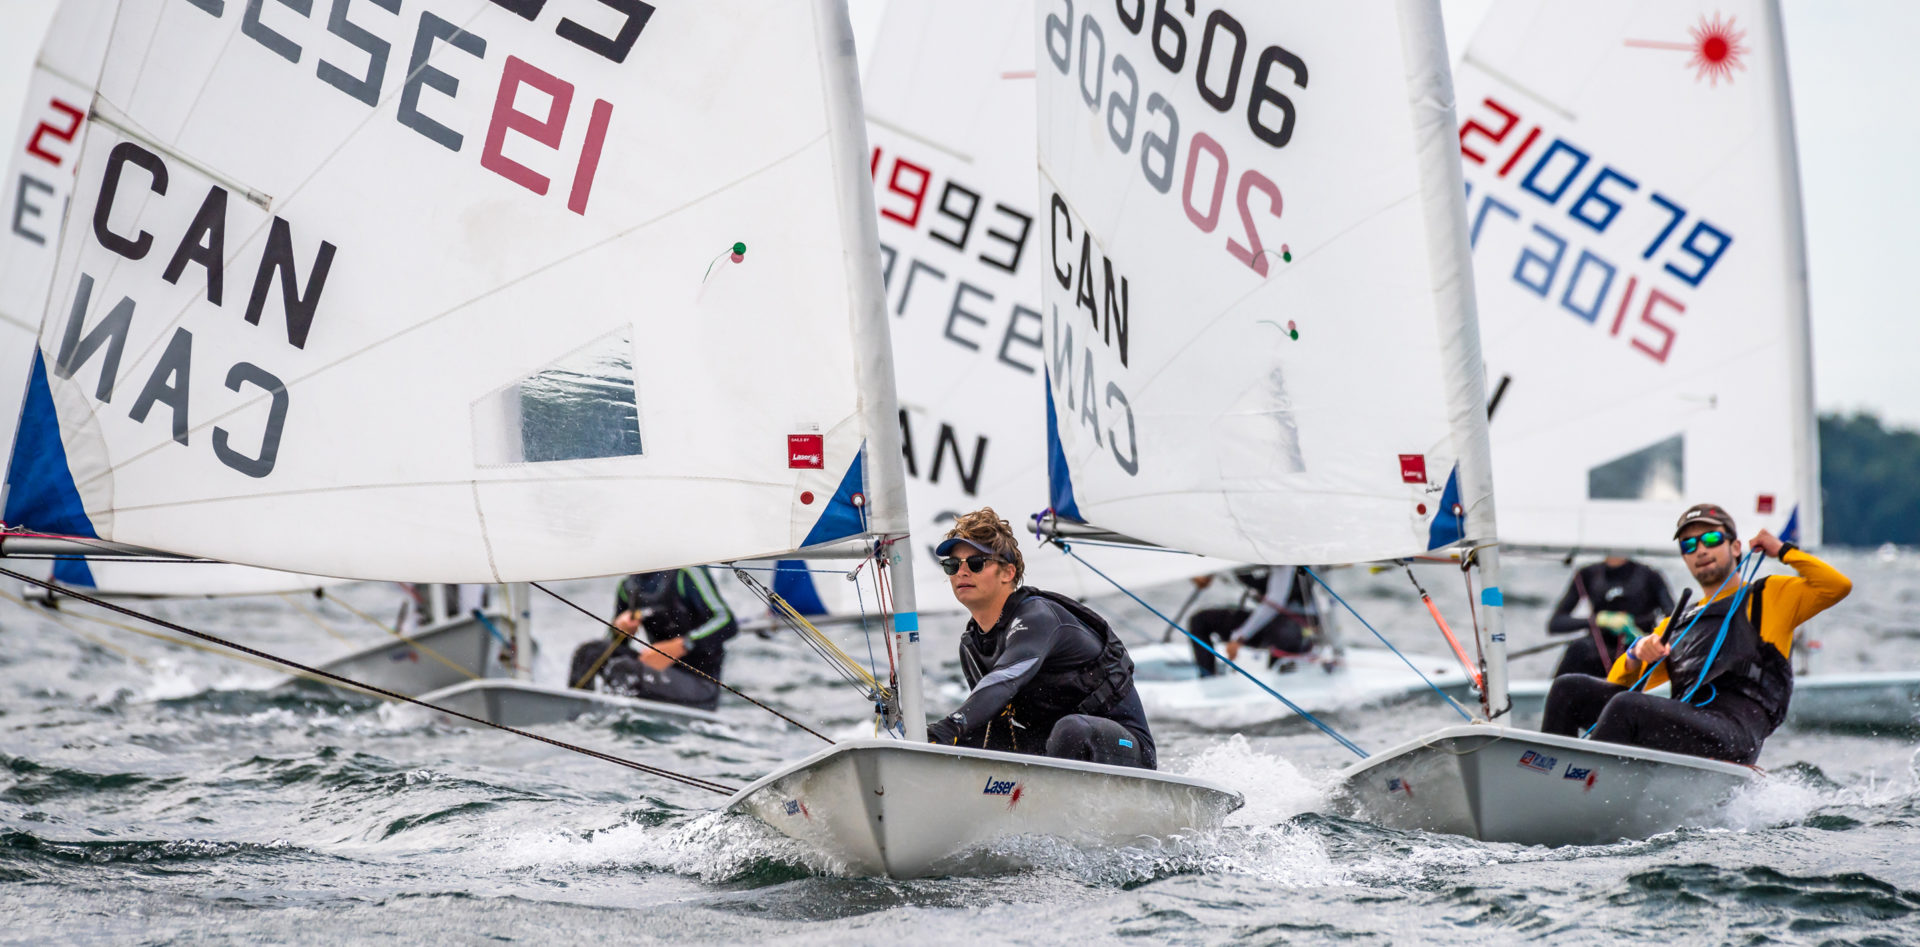 Sail Canada to develop three National Sail Training Centres across the country